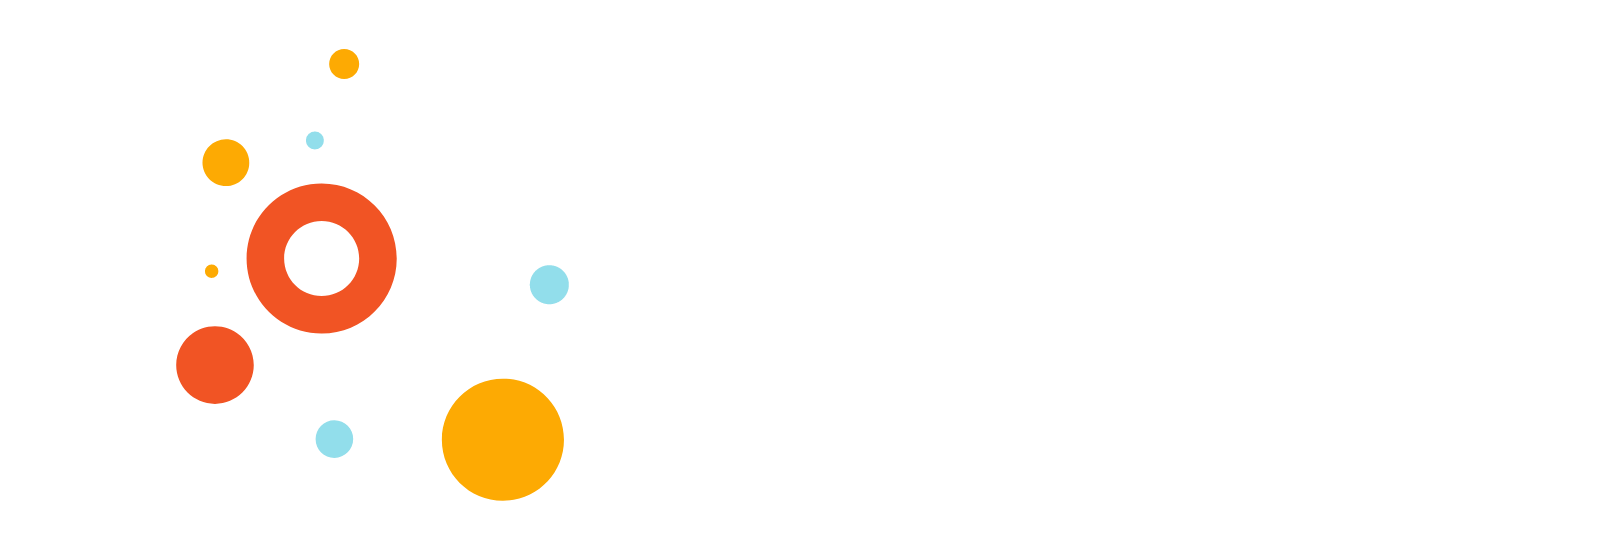 International Climate Dividend Alliance